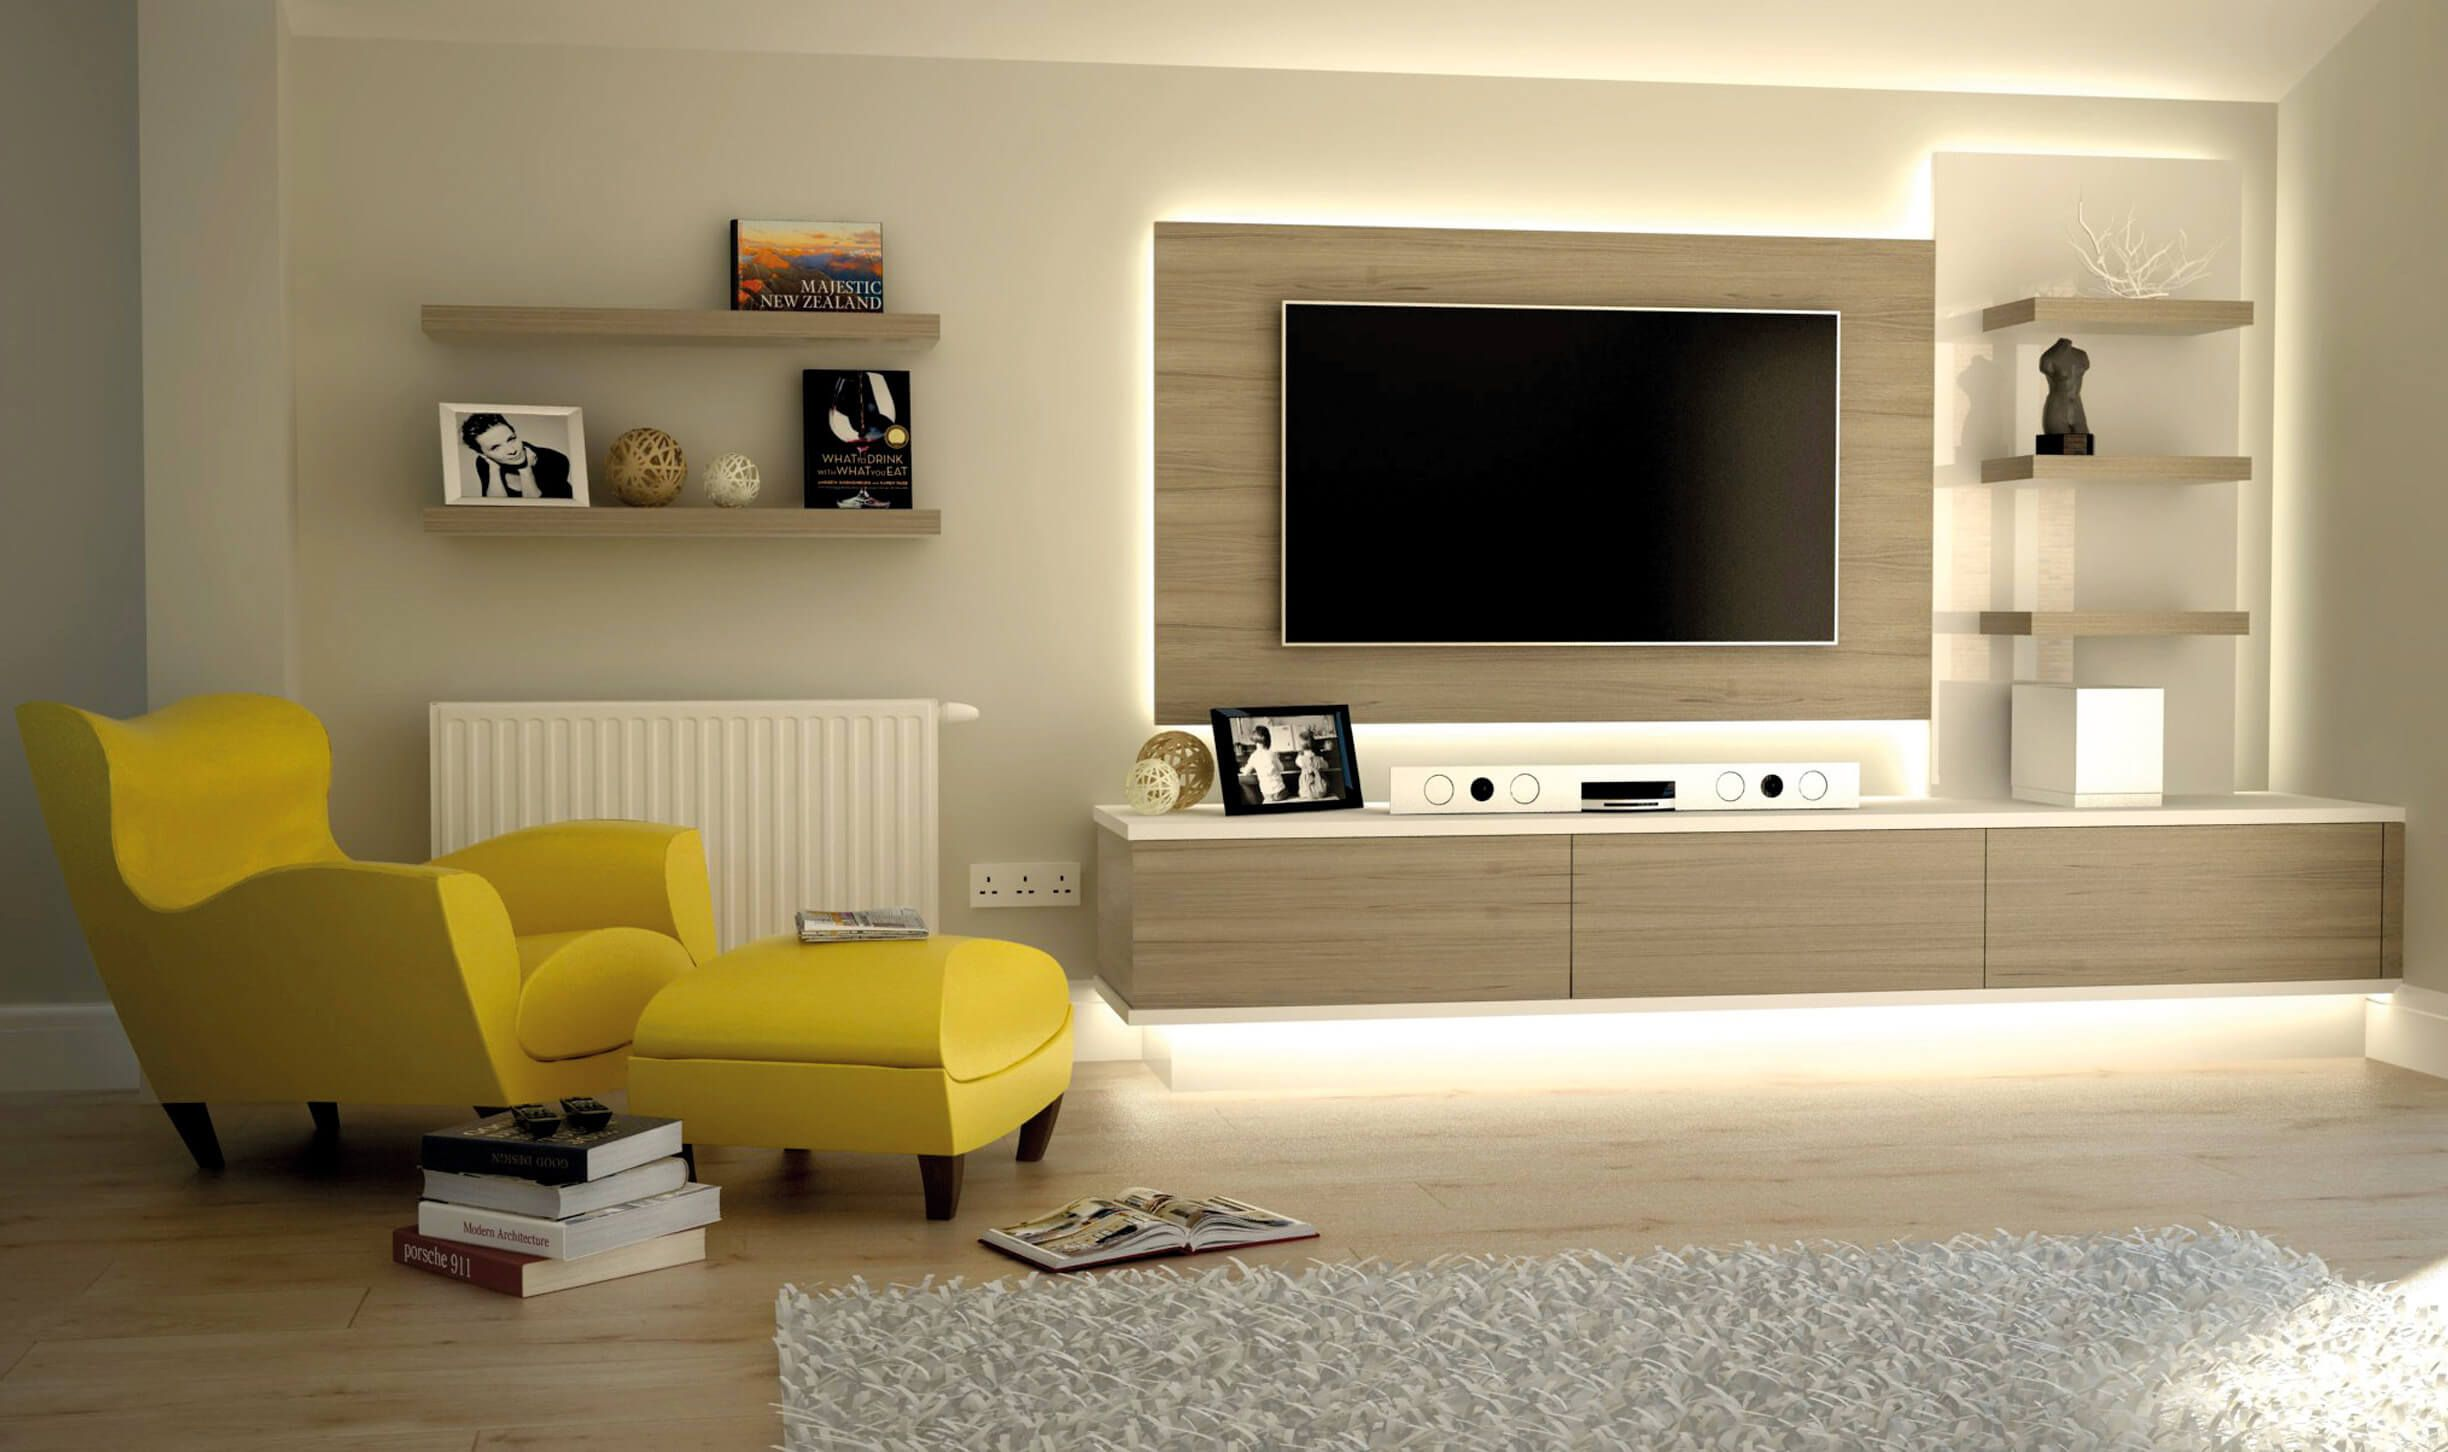 bespoke tv cabinets, bookcases and storage units. for over 50